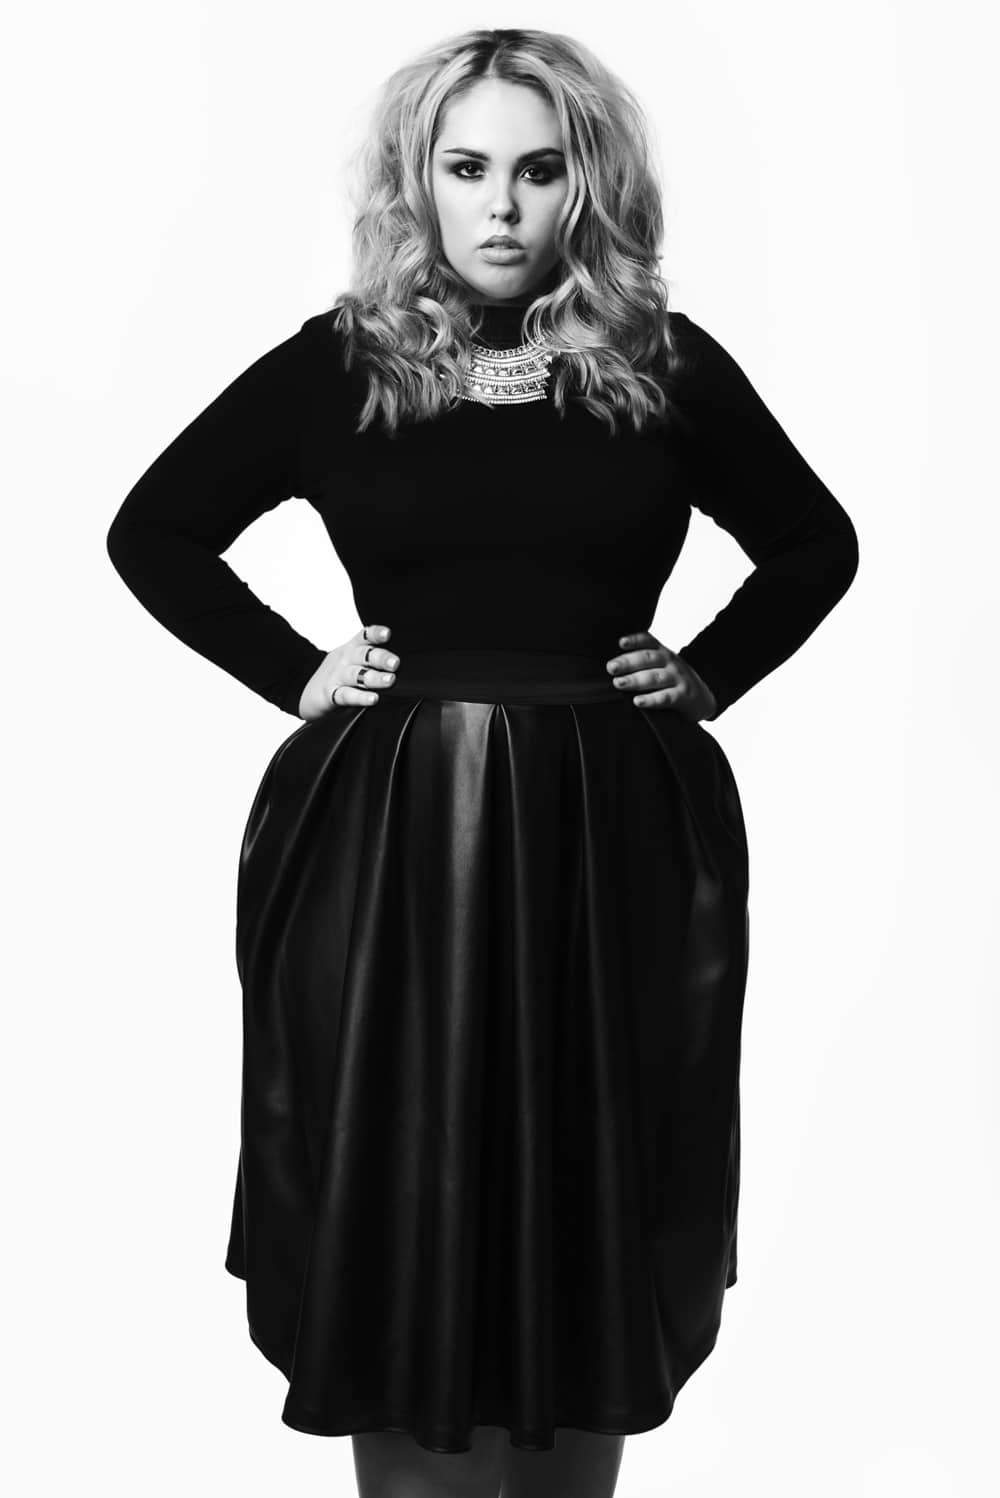 Interview with Plus SIze blogger-turned-designer, Remi Ray